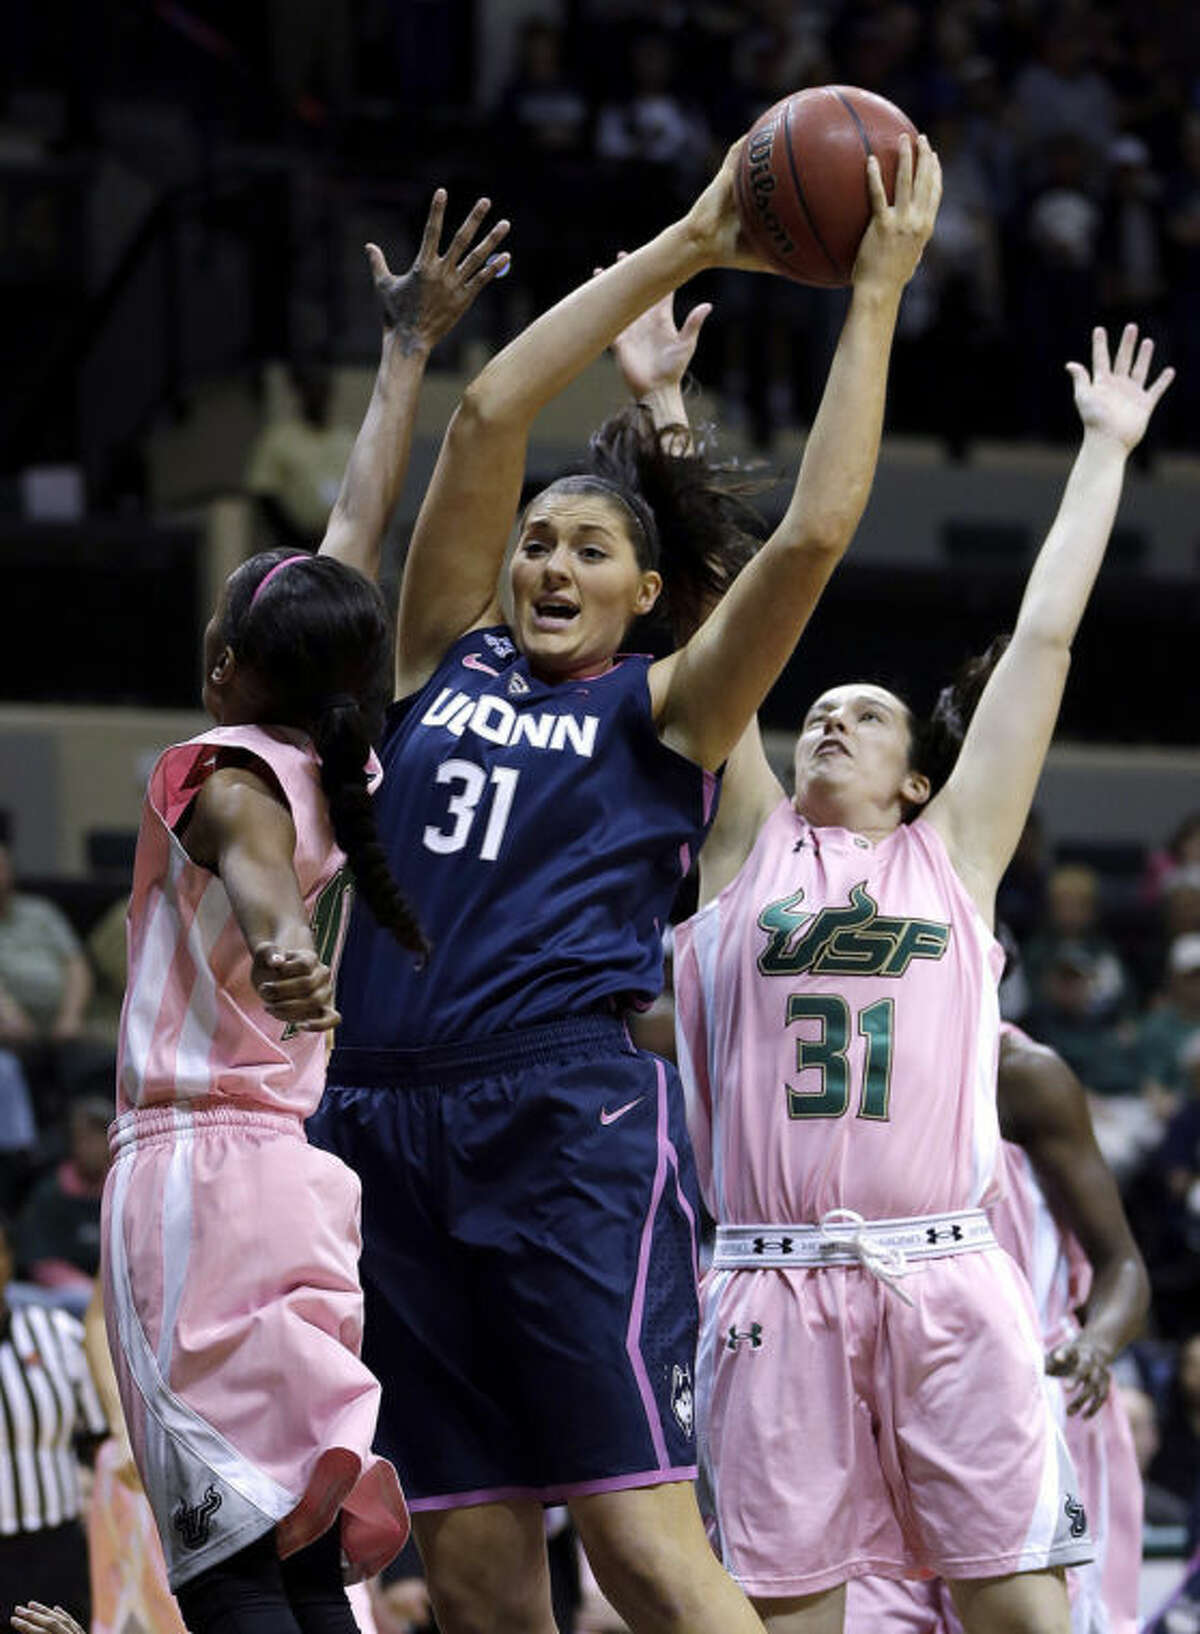 Connecticut center Stefanie Dolson (31, center) grabs a rebound away from South Florida guard Courtney Williams (10) and guard Laura Marcos Canedo (31) during the first half of an NCAA women's college basketball game, Sunday, Feb. 16, 2014, in Tampa, Fla. (AP Photo/Chris O'Meara)